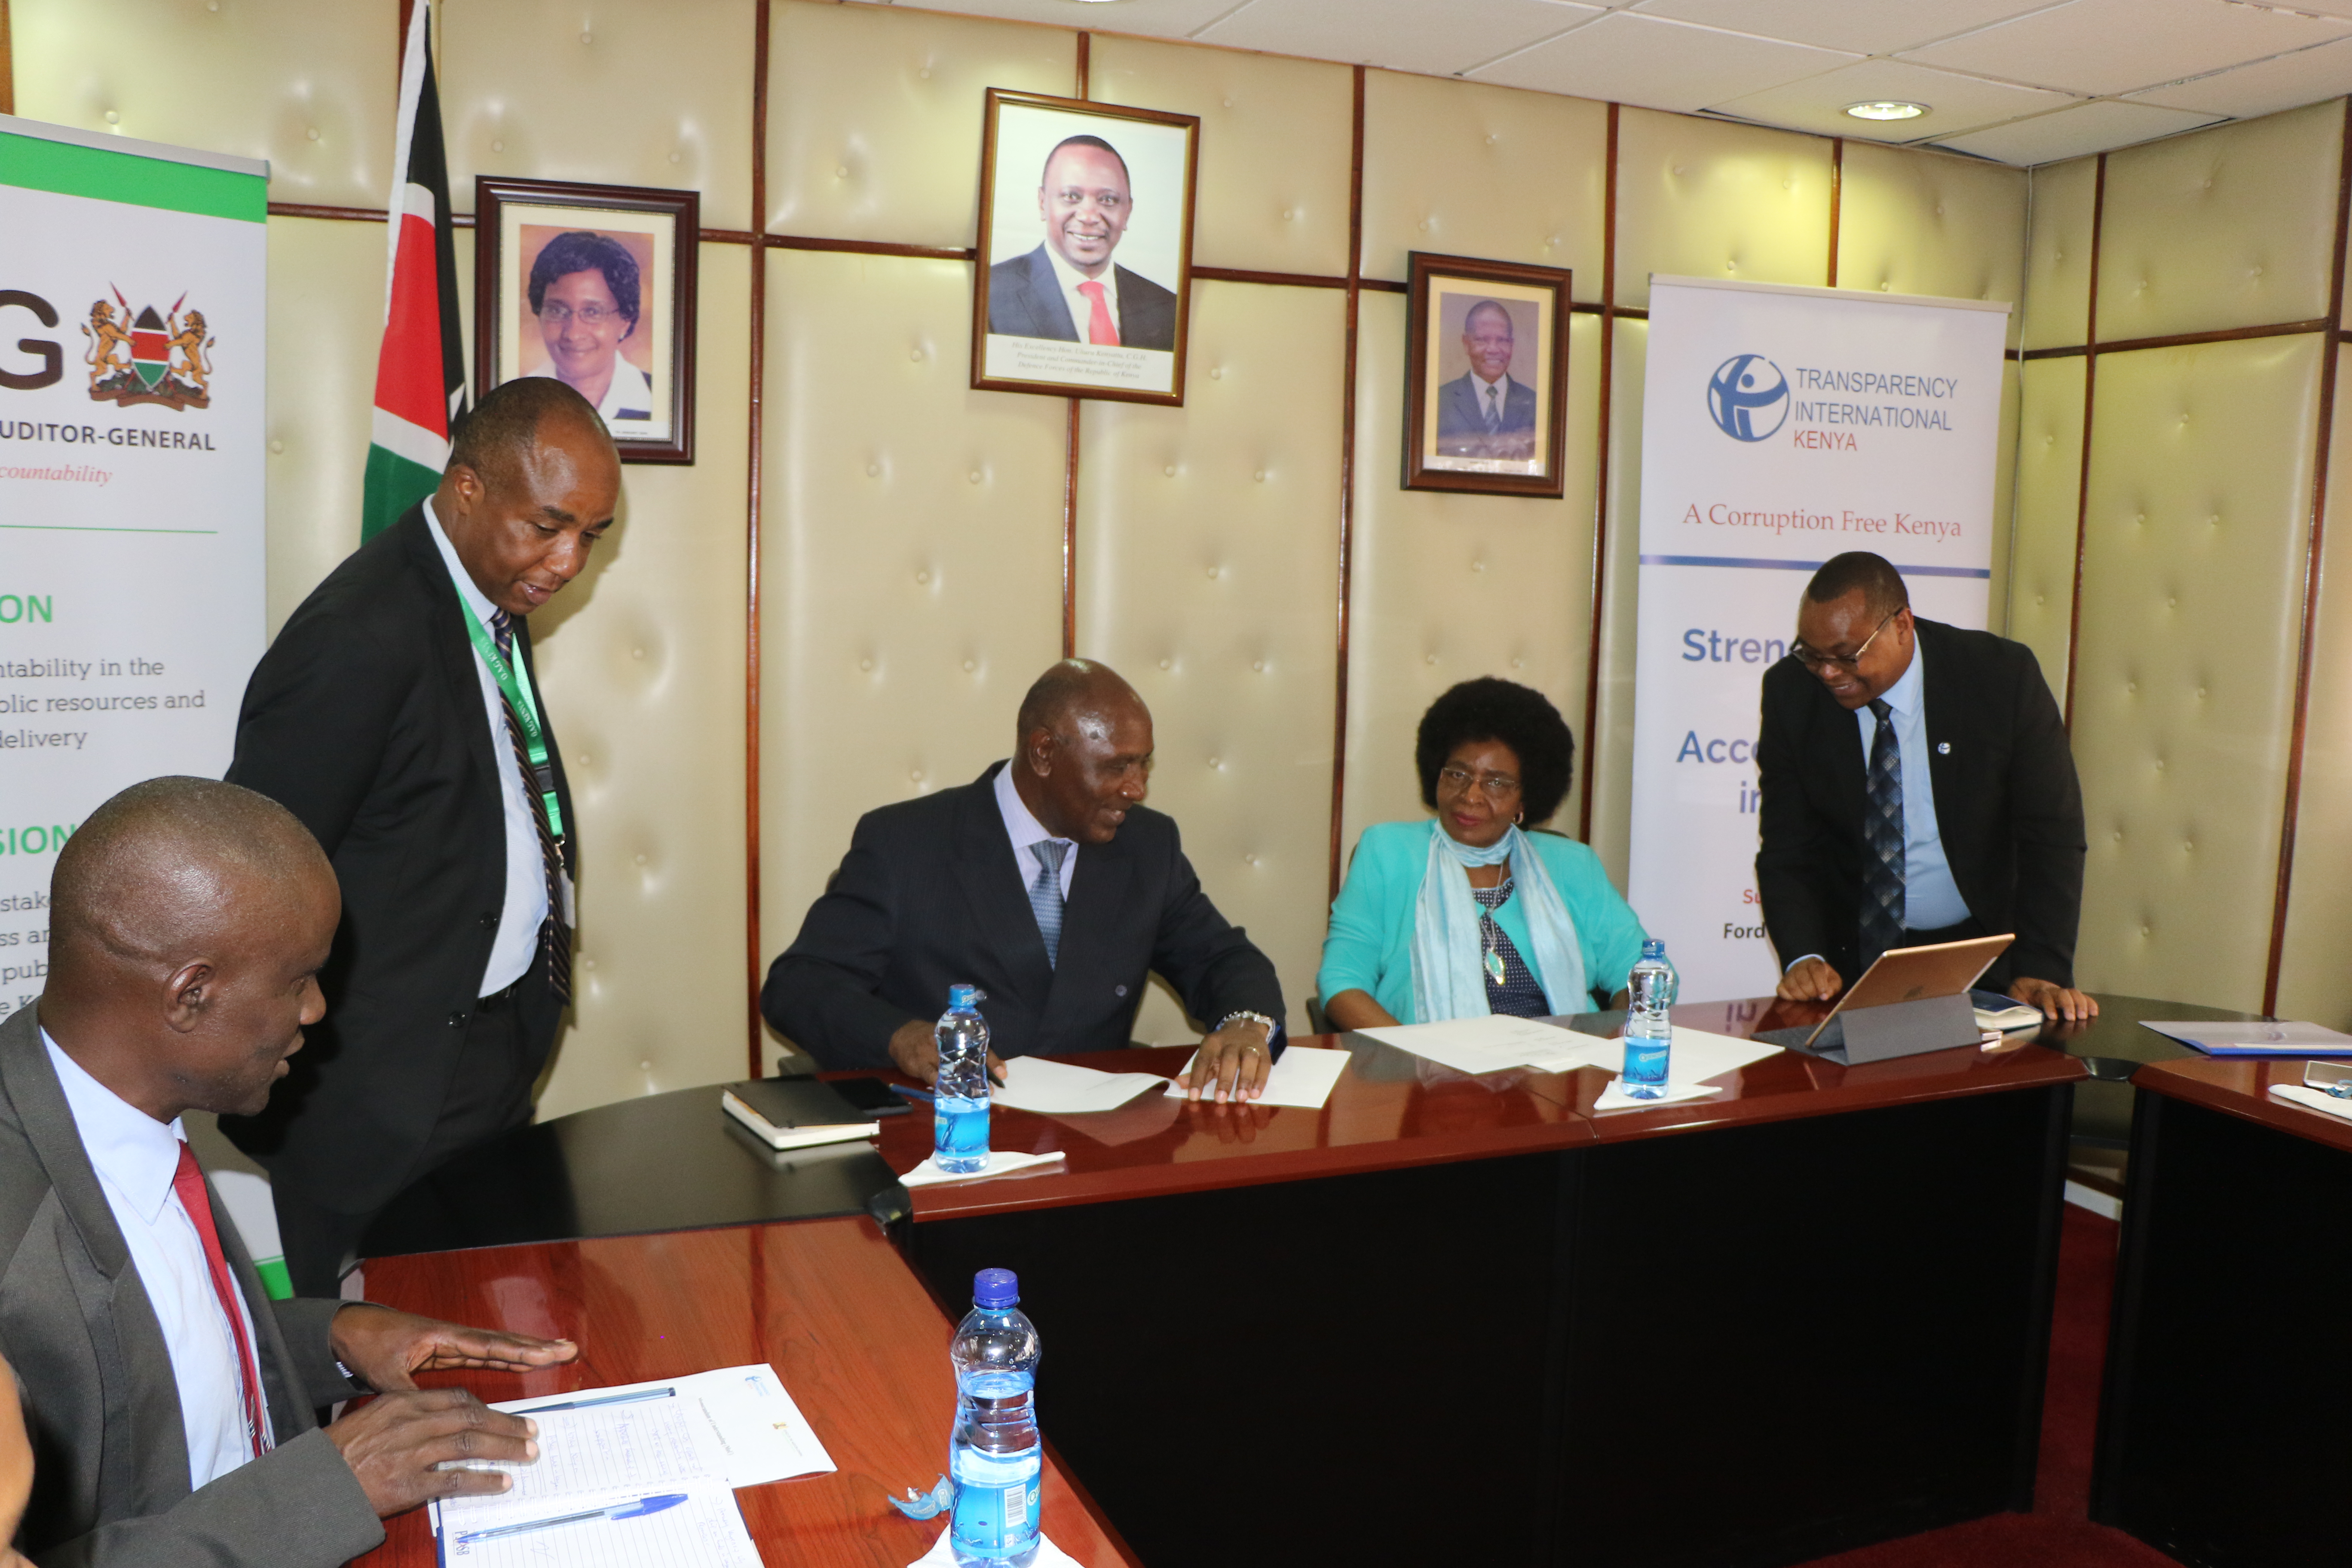 TI-Kenya Signs MOU with the Office of the Auditor General